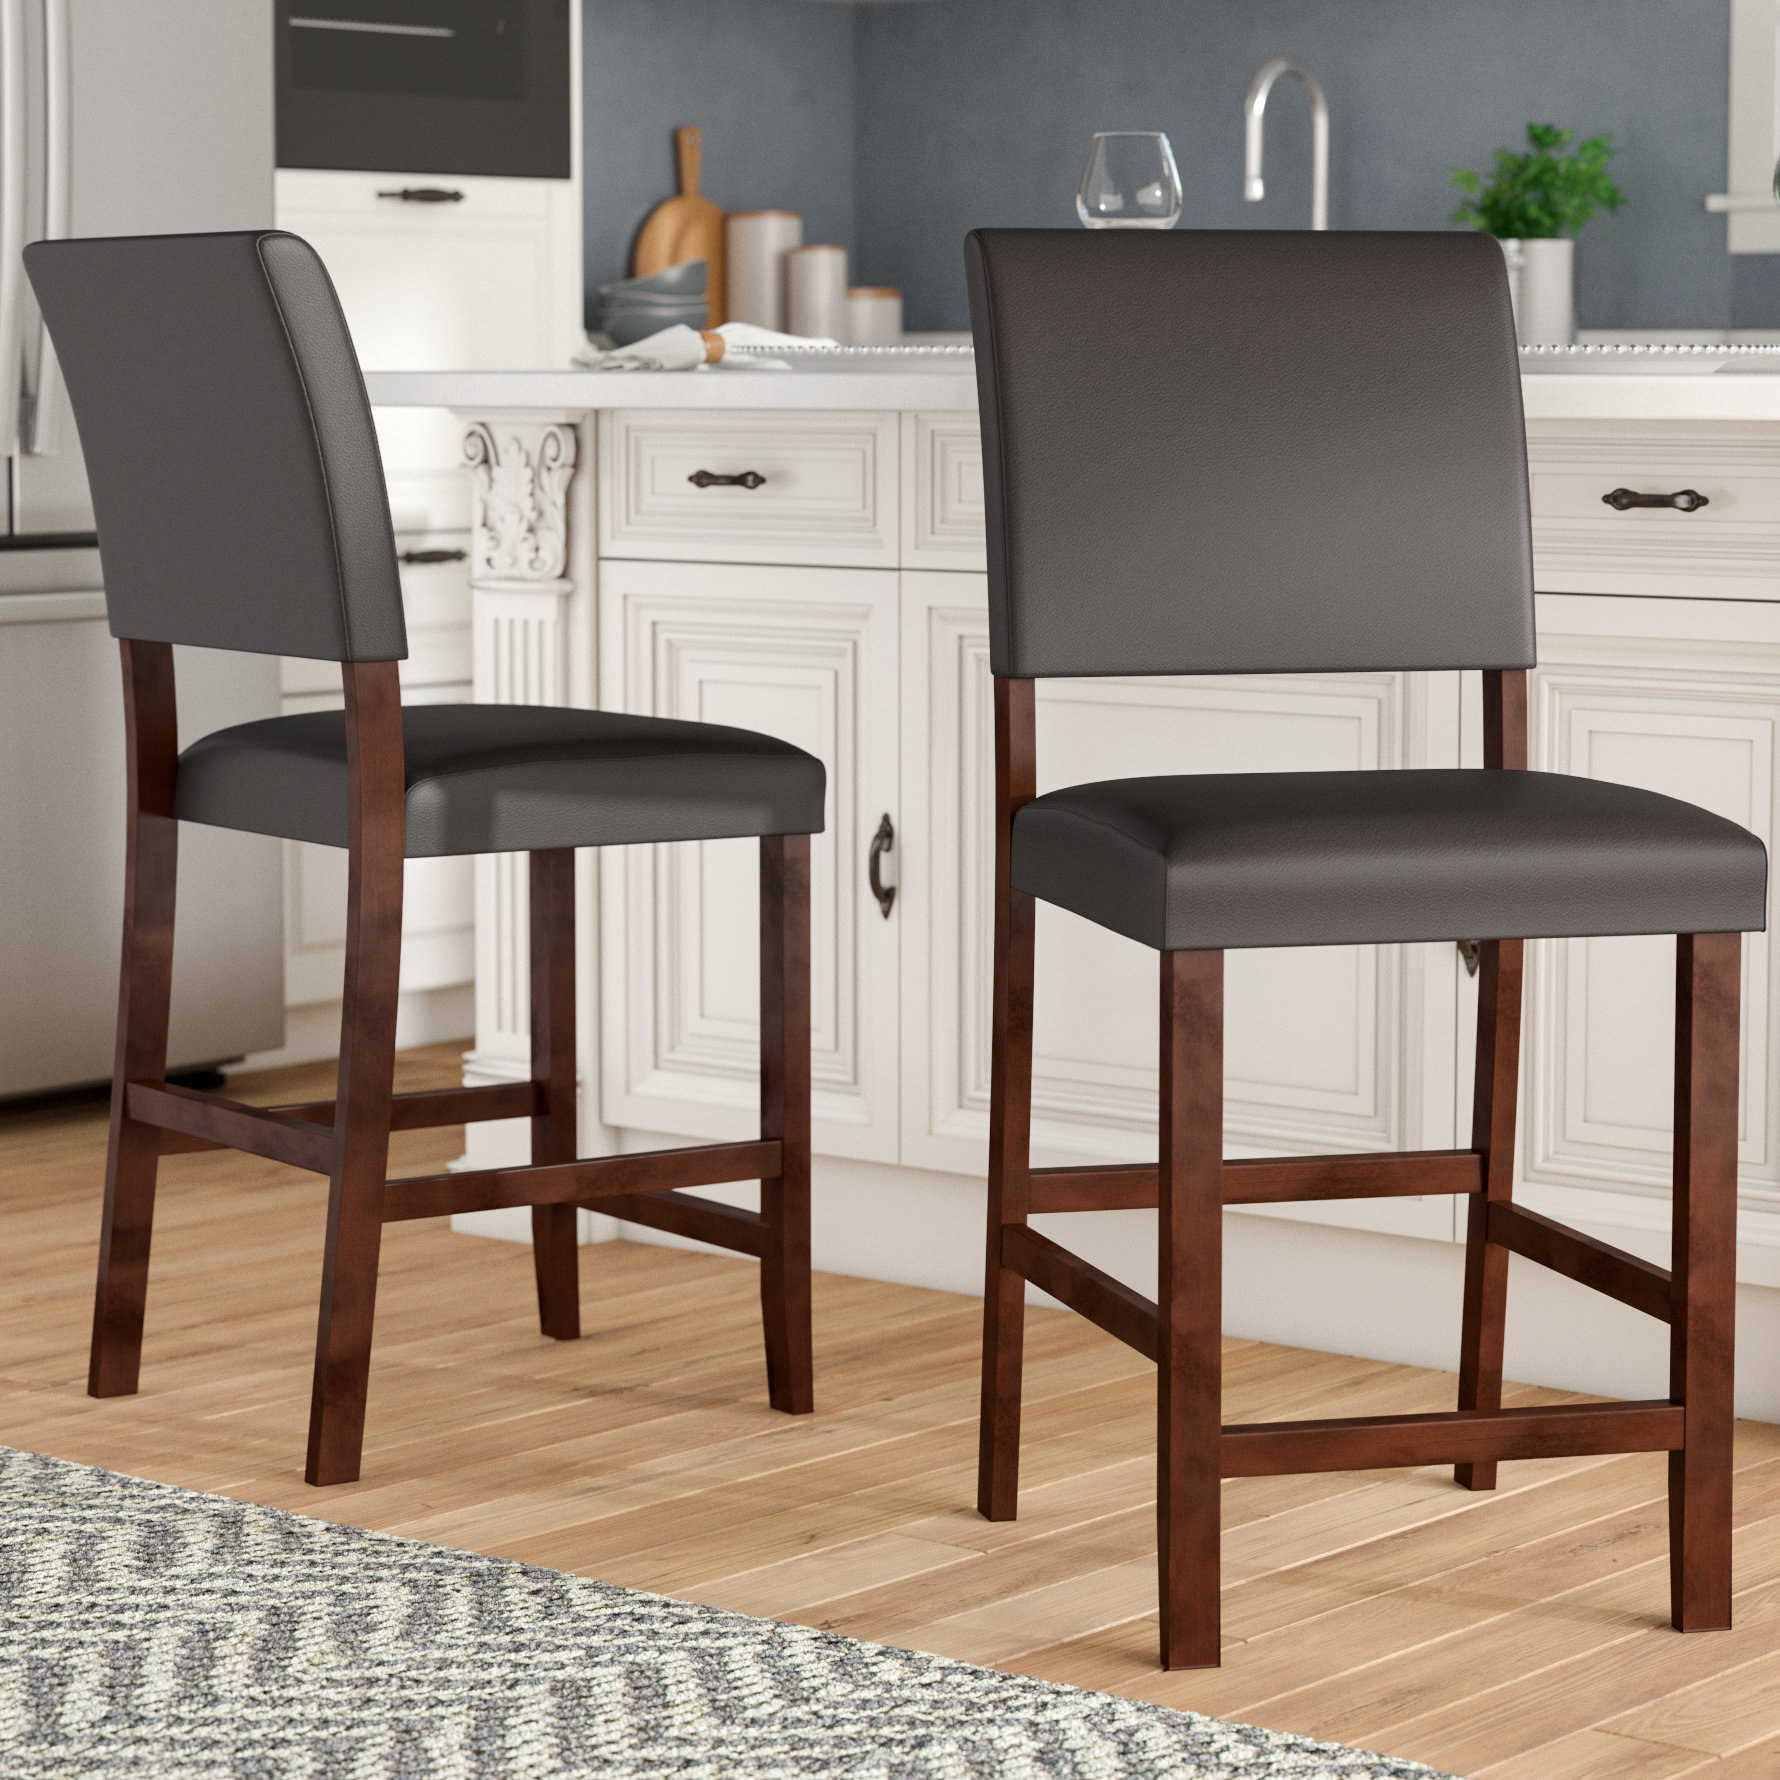 "Charlton Home Apple Valley 24"" Bar Stool & Reviews 